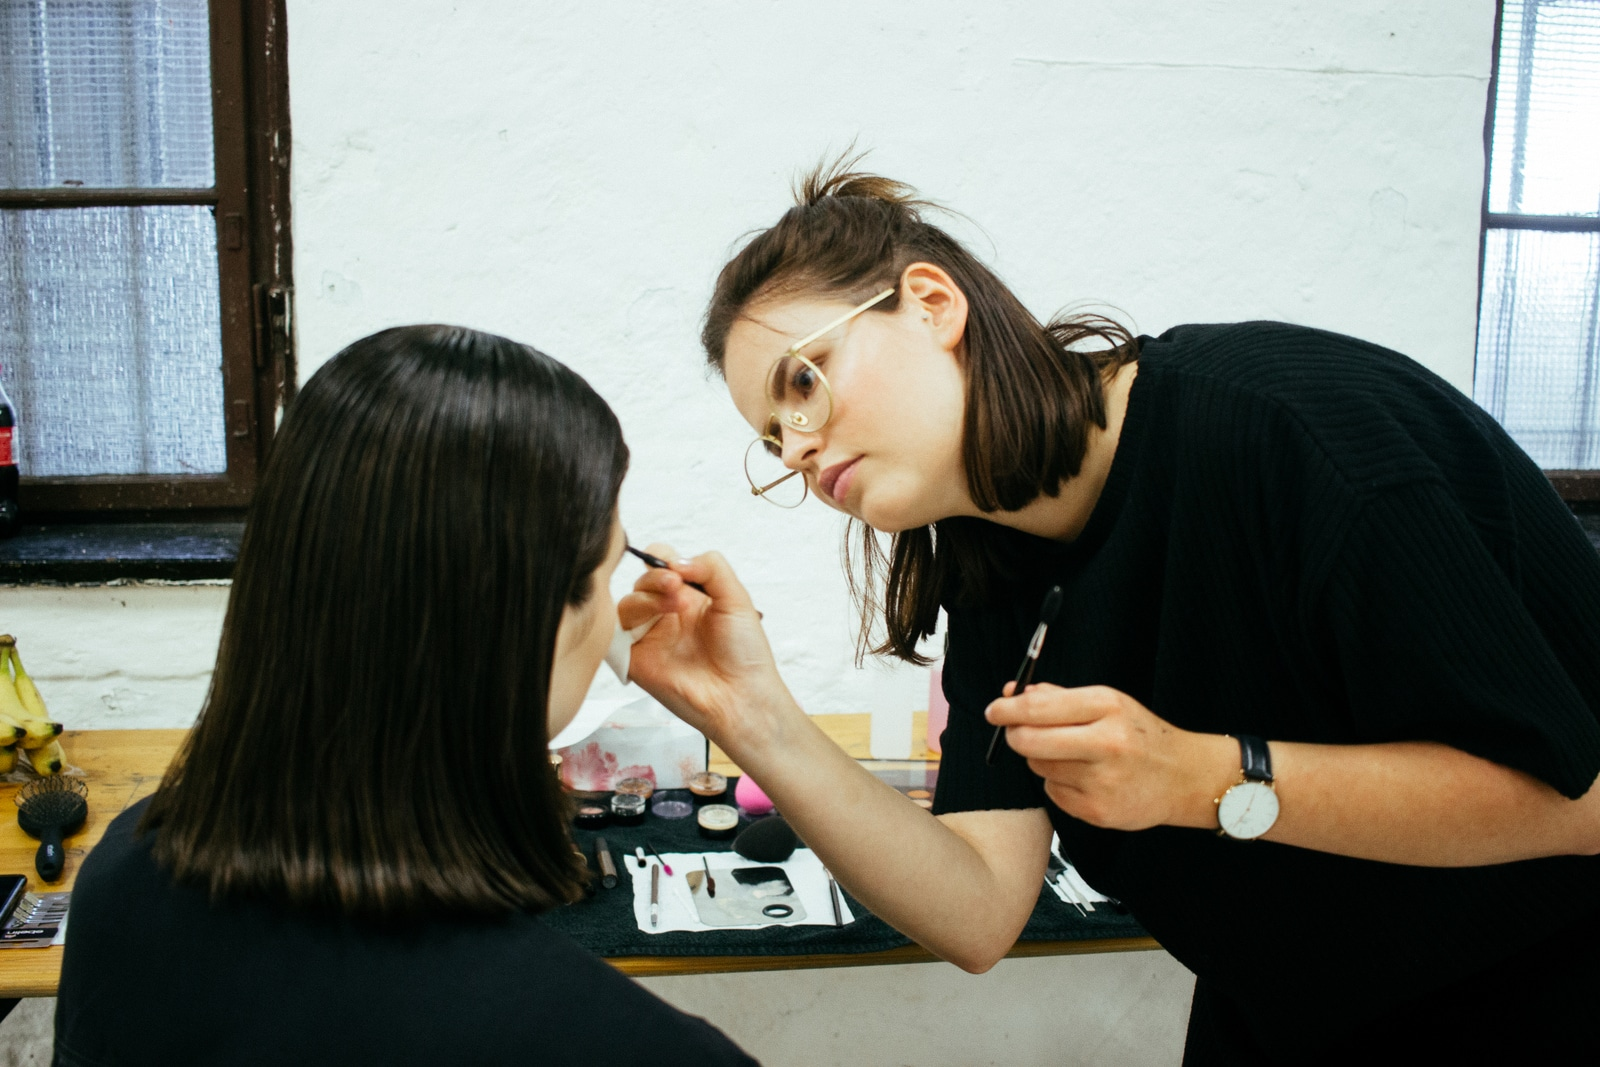 Julia Neumeister Make up artist und Visagistin leipzig bei der FLAMINGOCAT Fashionshow